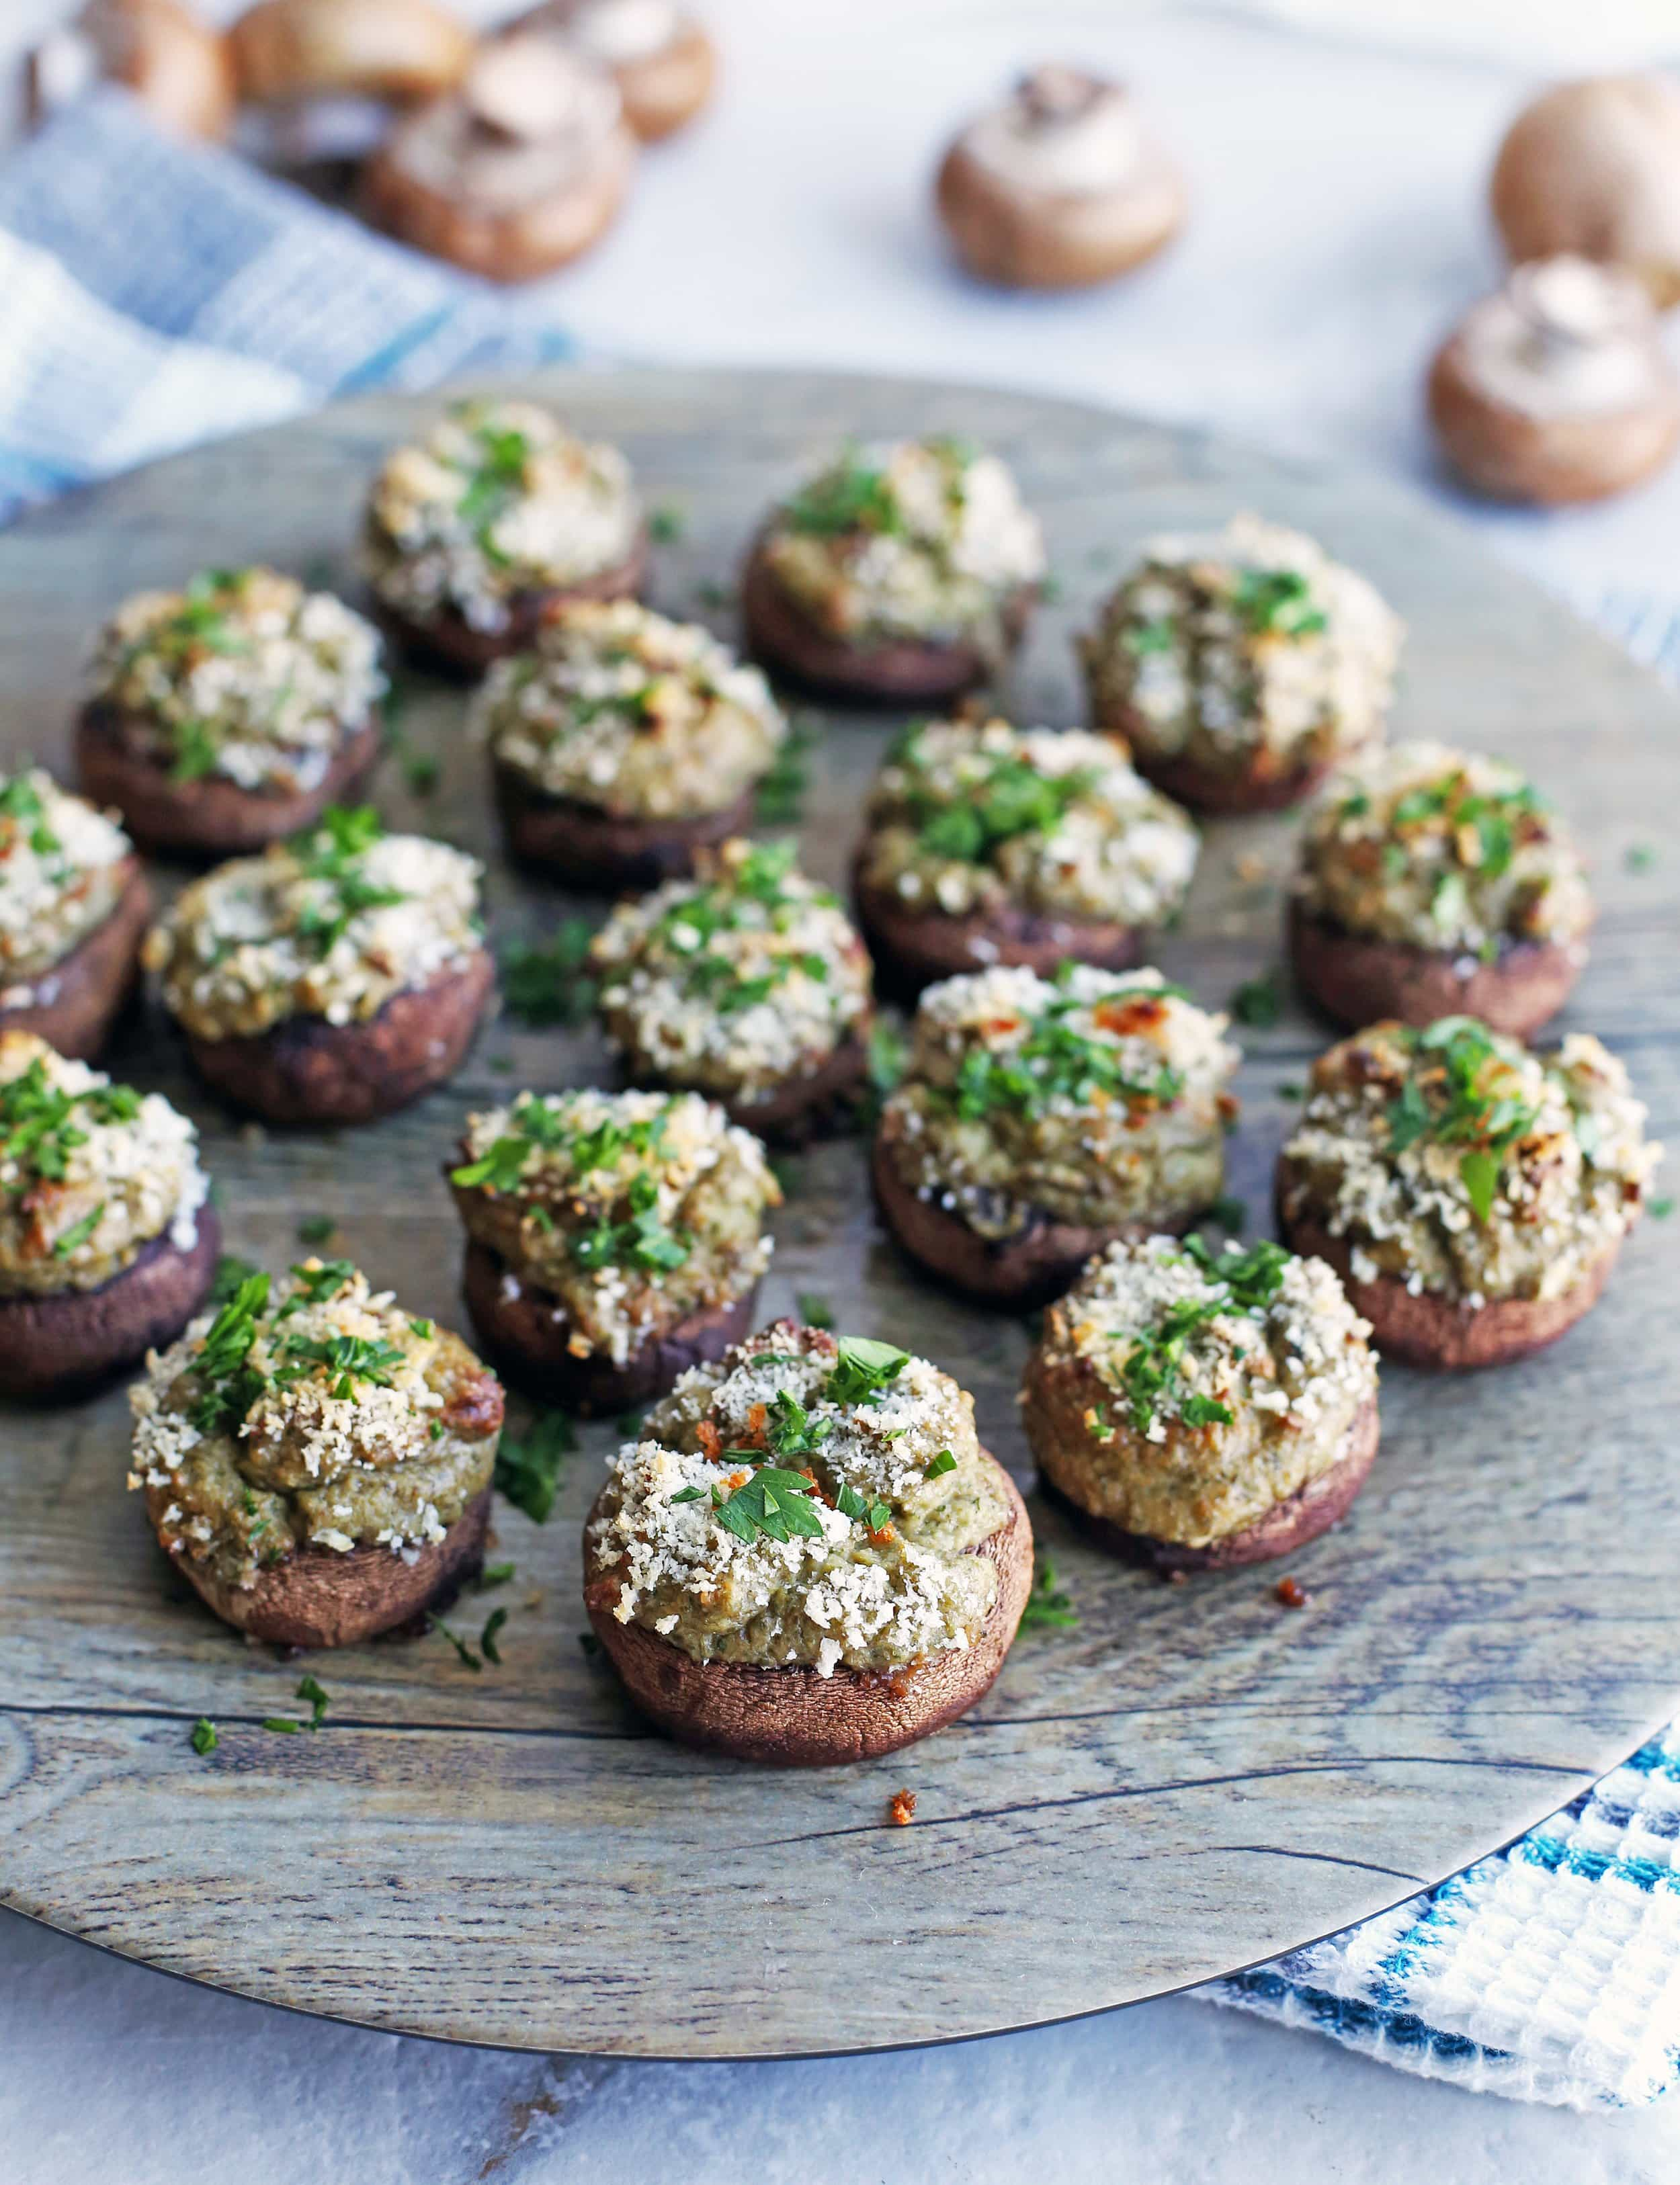 Over a dozen Baked Cheese Stuffed Mushrooms topped with breadcrumbs and chopped parsley on a round platter.